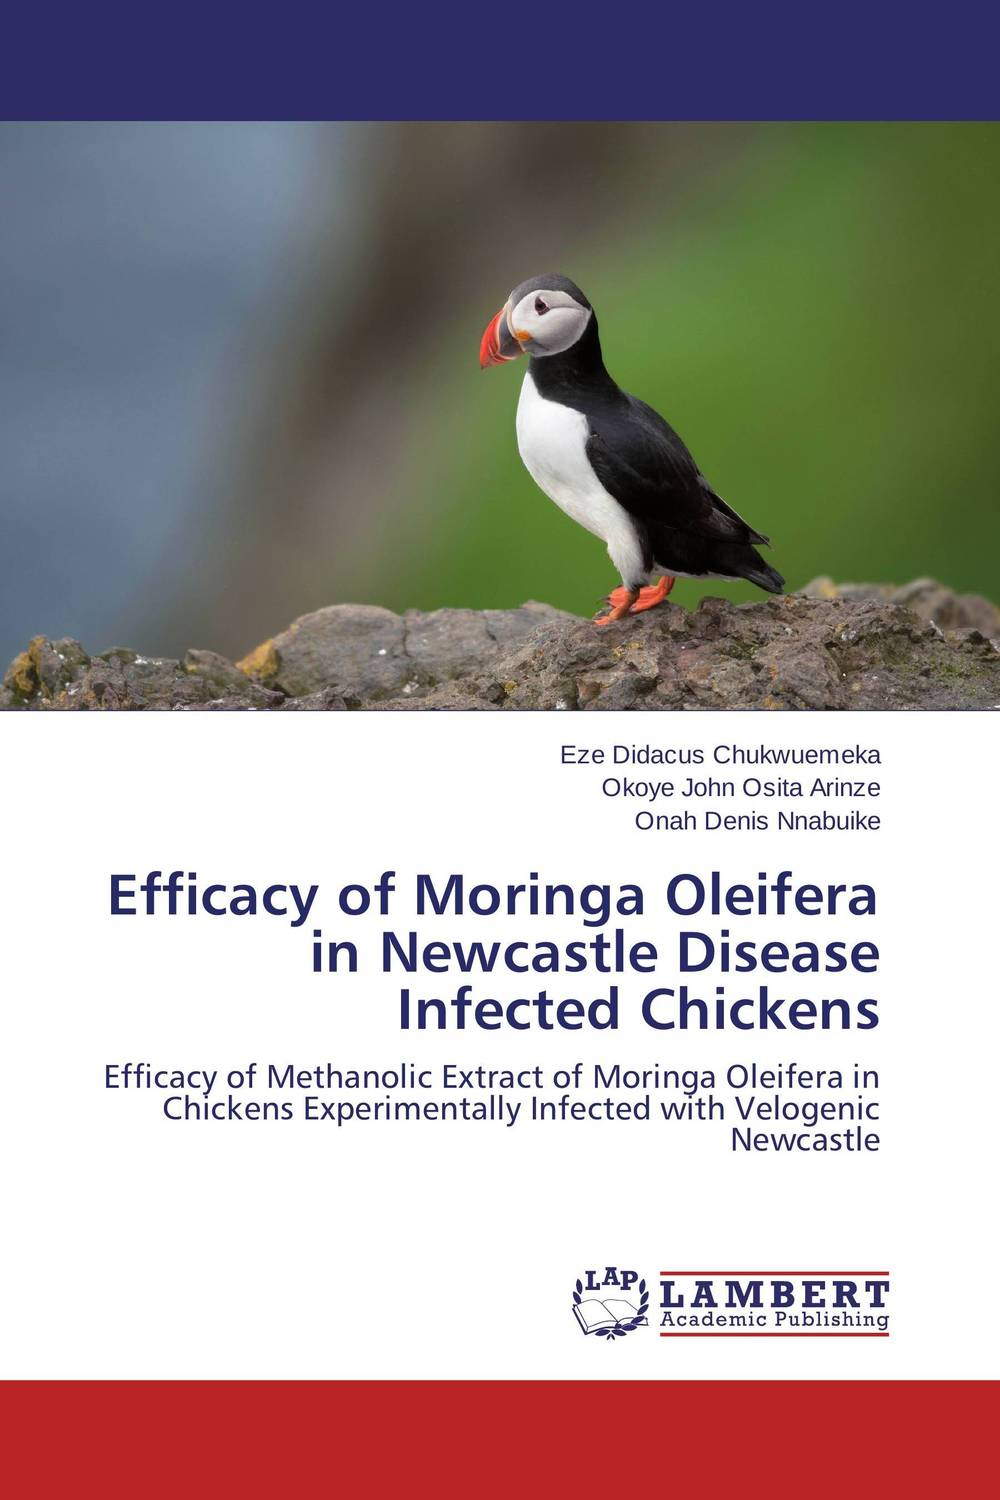 Efficacy of Moringa Oleifera in Newcastle Disease Infected Chickens moxibustion box querysystem cauterize moxa roll box utensils moxa tank